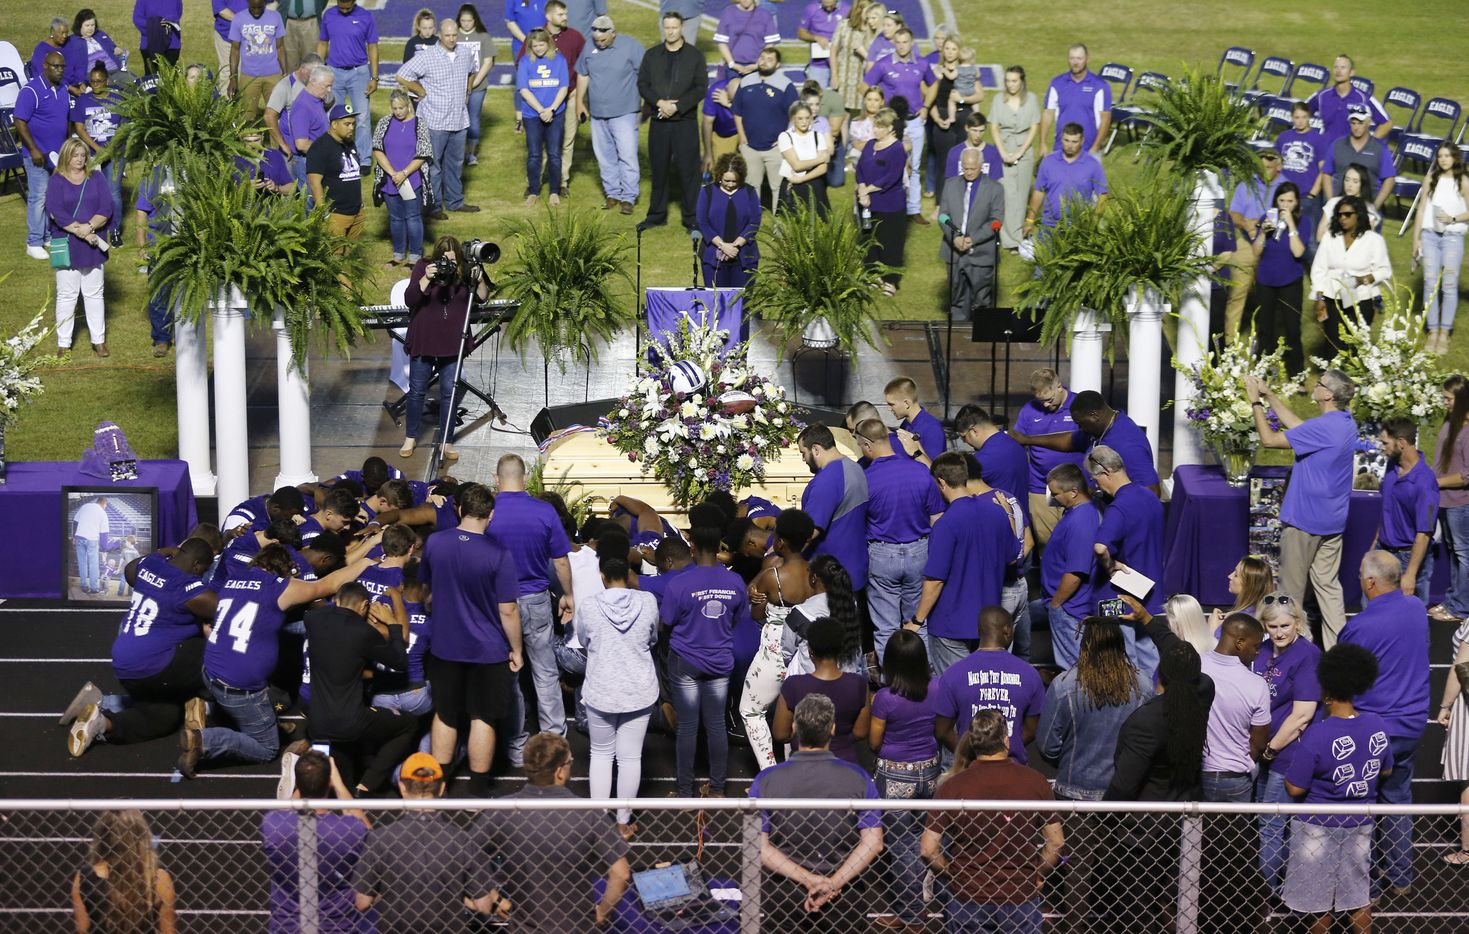 """Newton High School football team recites the Lord's prayer after a memorial service for Newton High School head football coach William Theodore """"W.T."""" Johnston at Curtis Barbay Field at Newton High School in Newton, Texas on Wednesday, May 15, 2019. (Vernon Bryant/The Dallas Morning News)"""